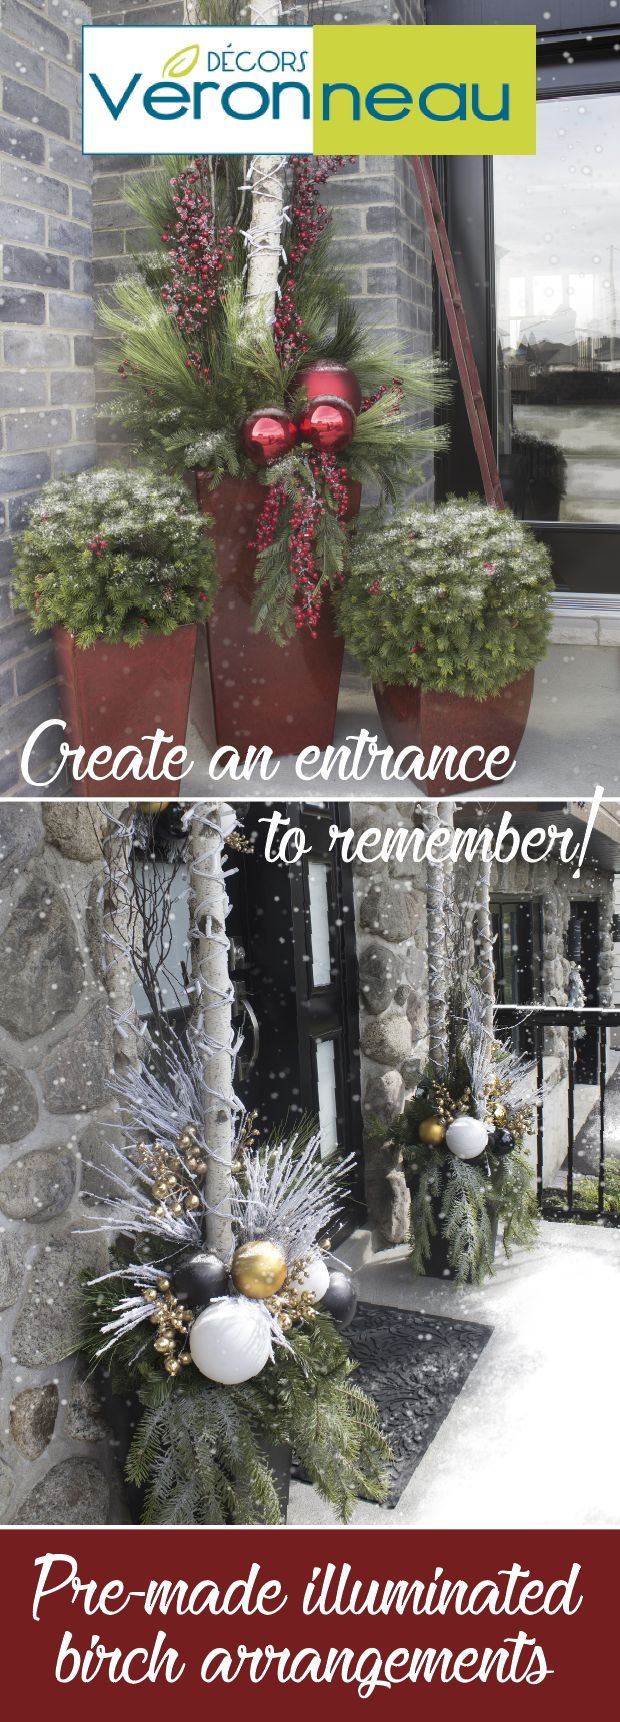 Potted Christmas arrangements are all you need to create a Winter Wonderland in your entryway! Using birch trunks, Christmas tree lights, Christmas Ornaments and a little bit of greenery, you can have your own custom-created outdoor Christmas decor!